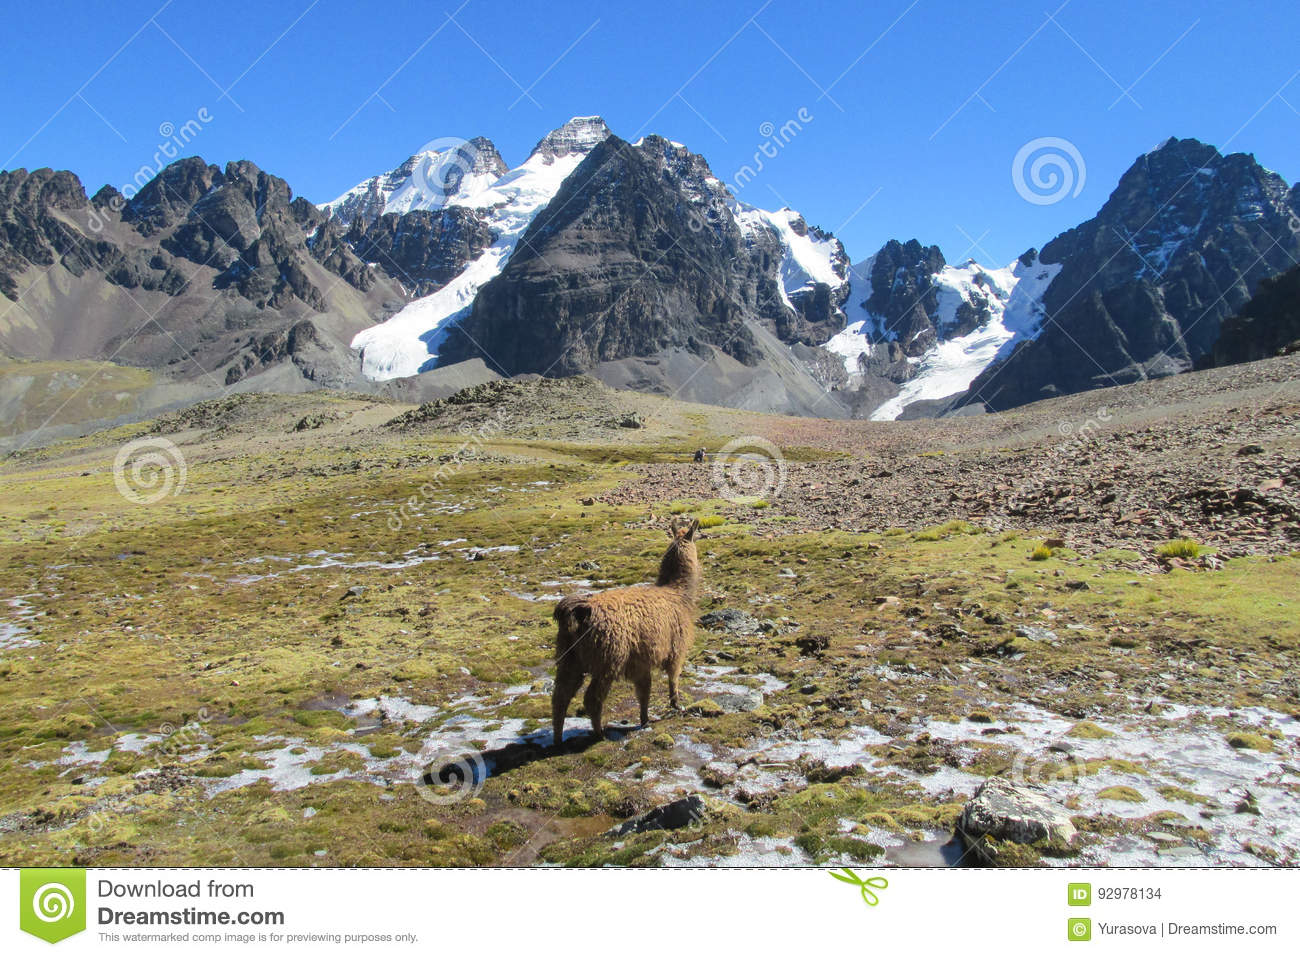 Alpaca In The Andes Mountains Of Bolivia Stock Photo Image Of Grass Brown 92978134